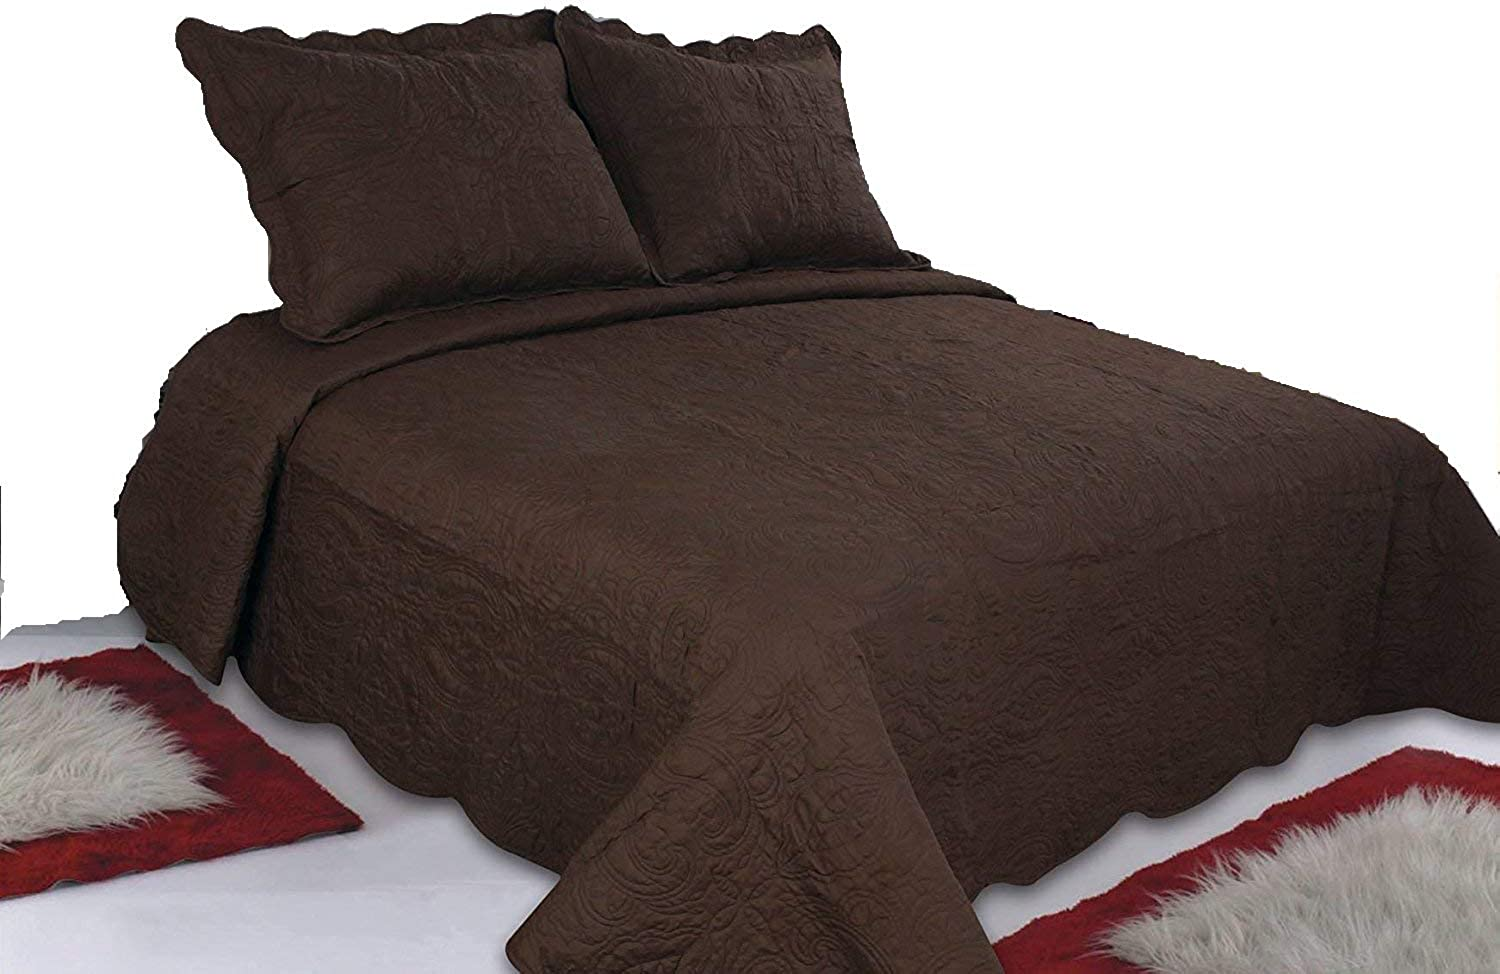 ALL FOR YOU 3-Piece Reversible Bedspread Quilt Set-Chocolate Brown (Larger King with King Size Pillow Shams)